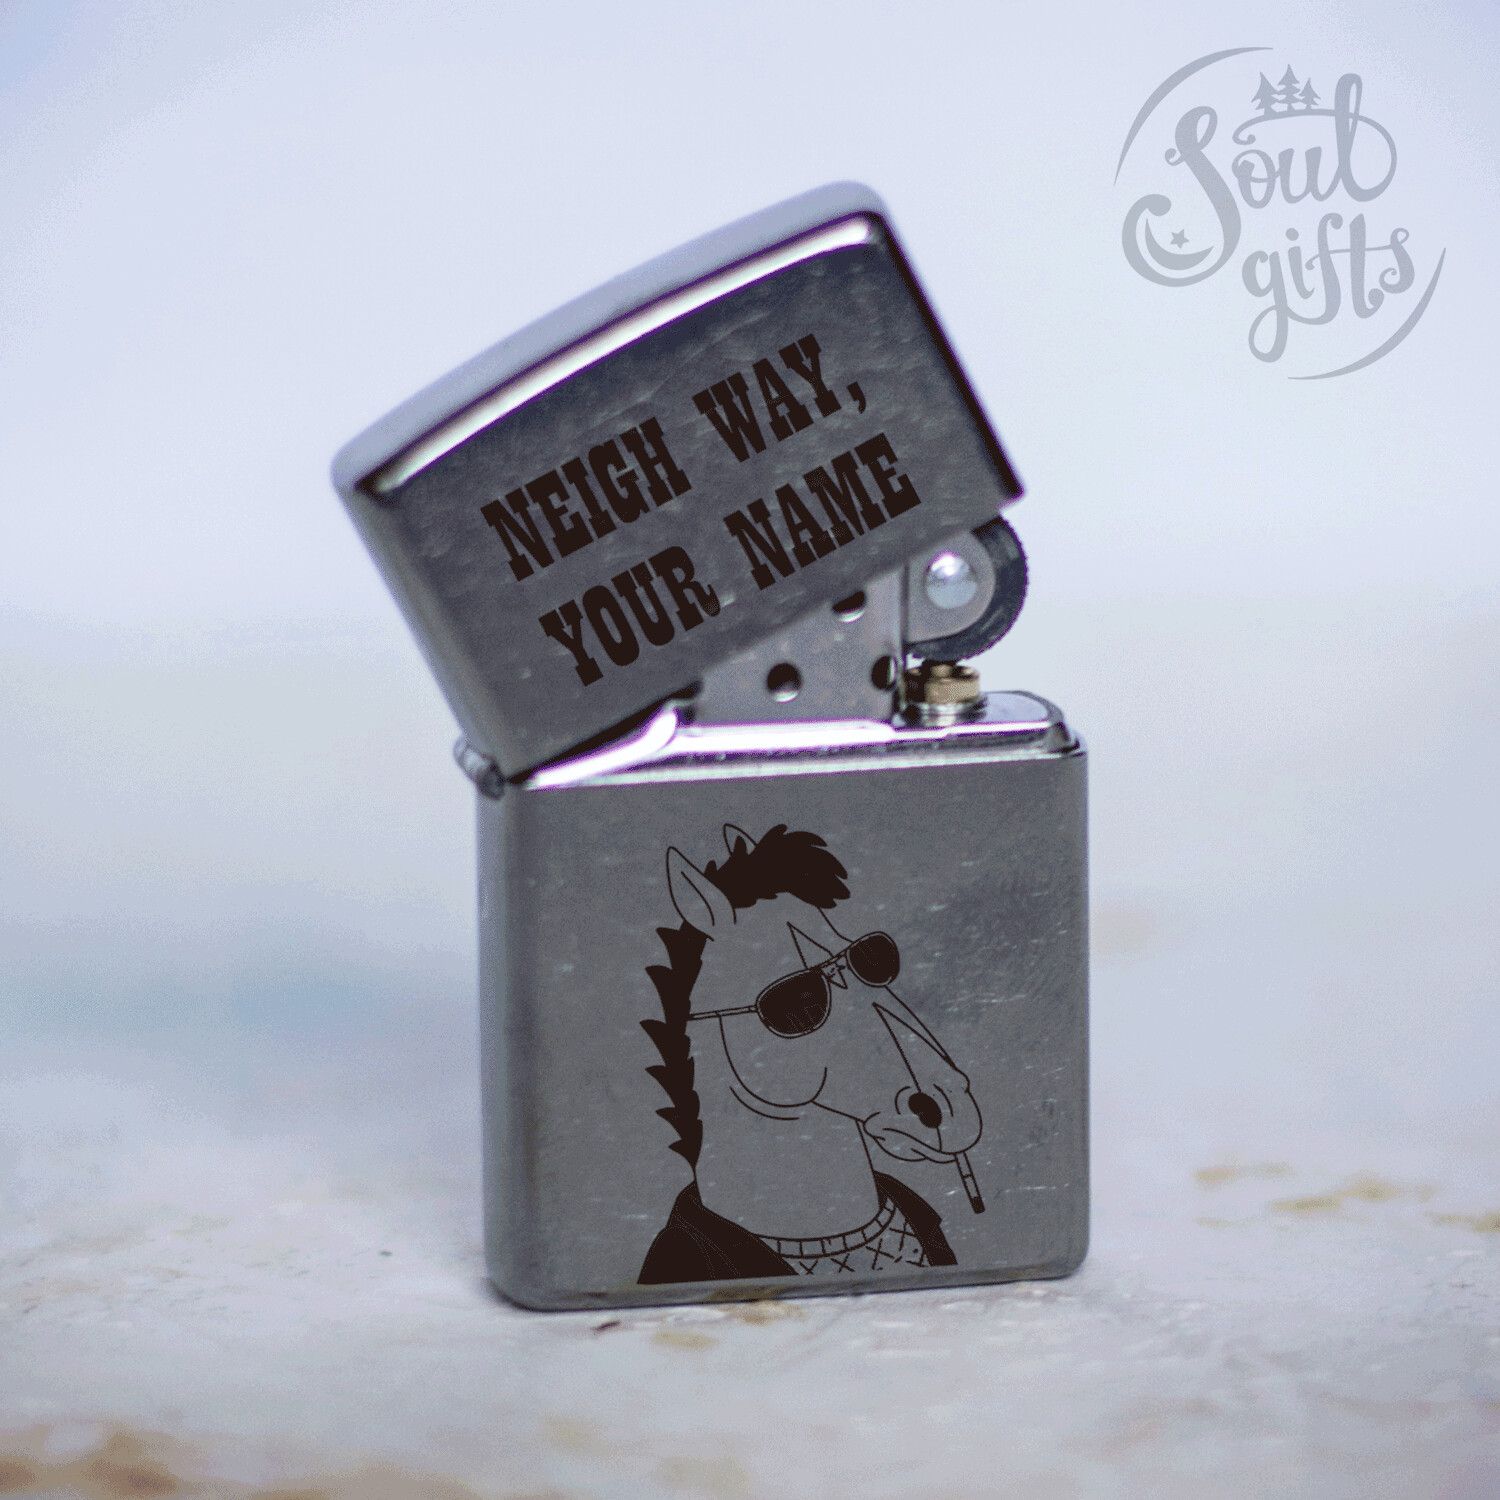 Bojack Horseman Zippo 207 lighter /  Neigh way, Jose / Custom zippo lighter